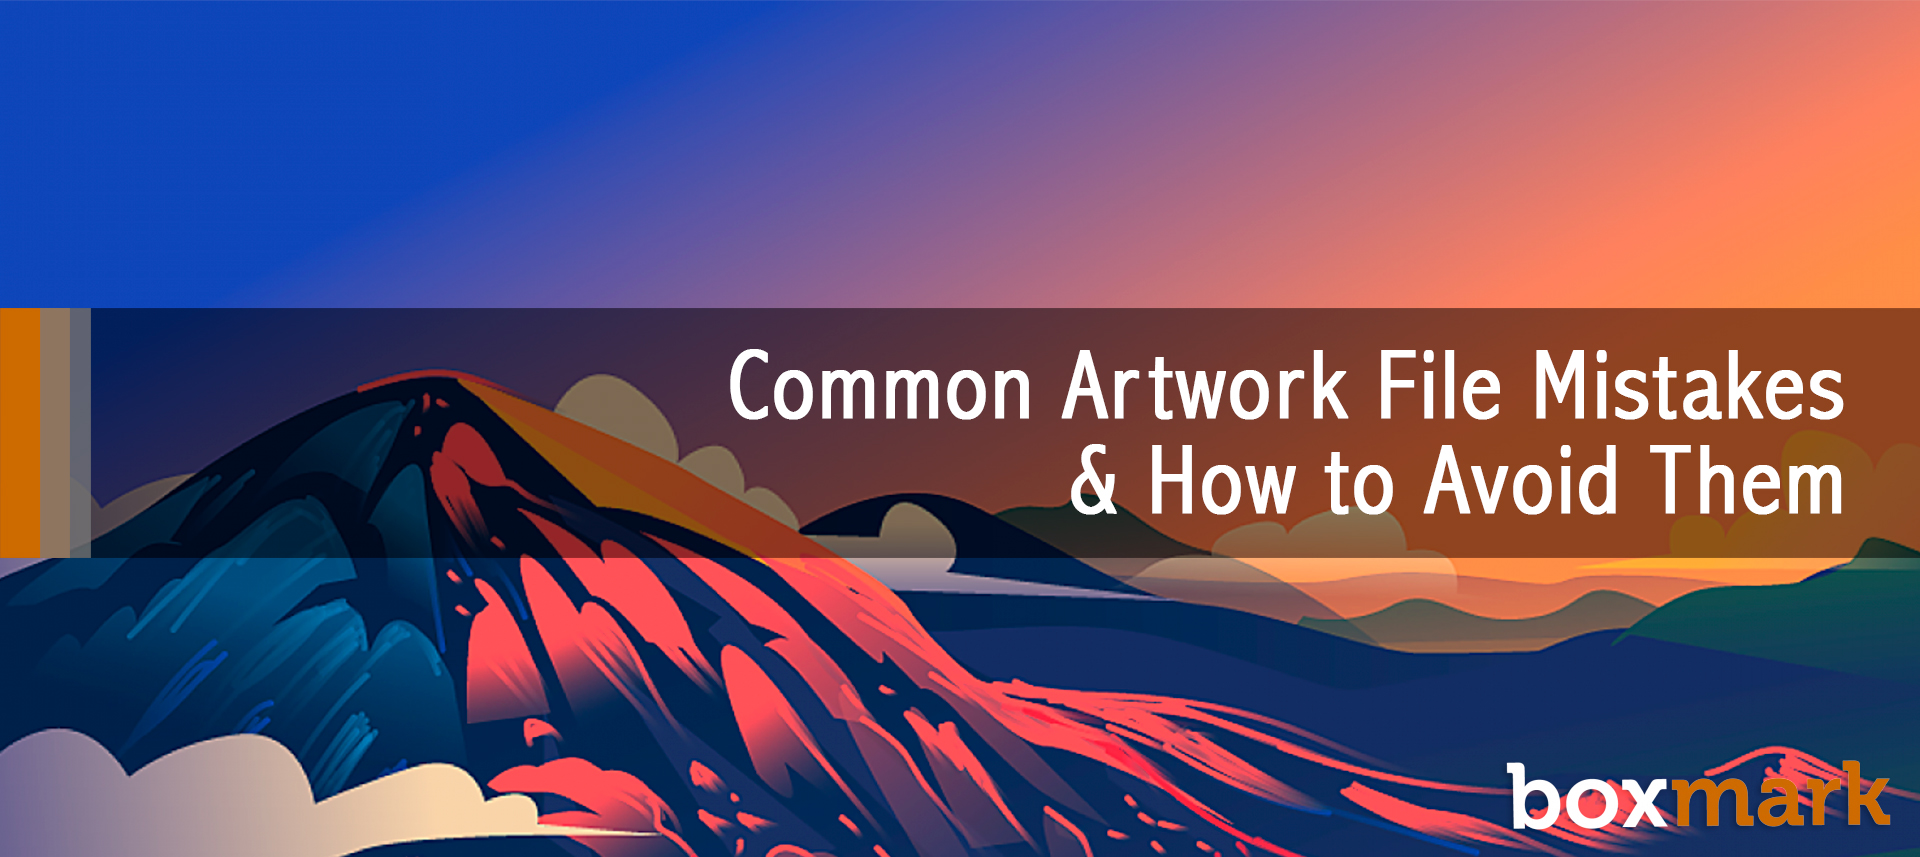 Common Artwork File Mistakes & How to Avoid Them